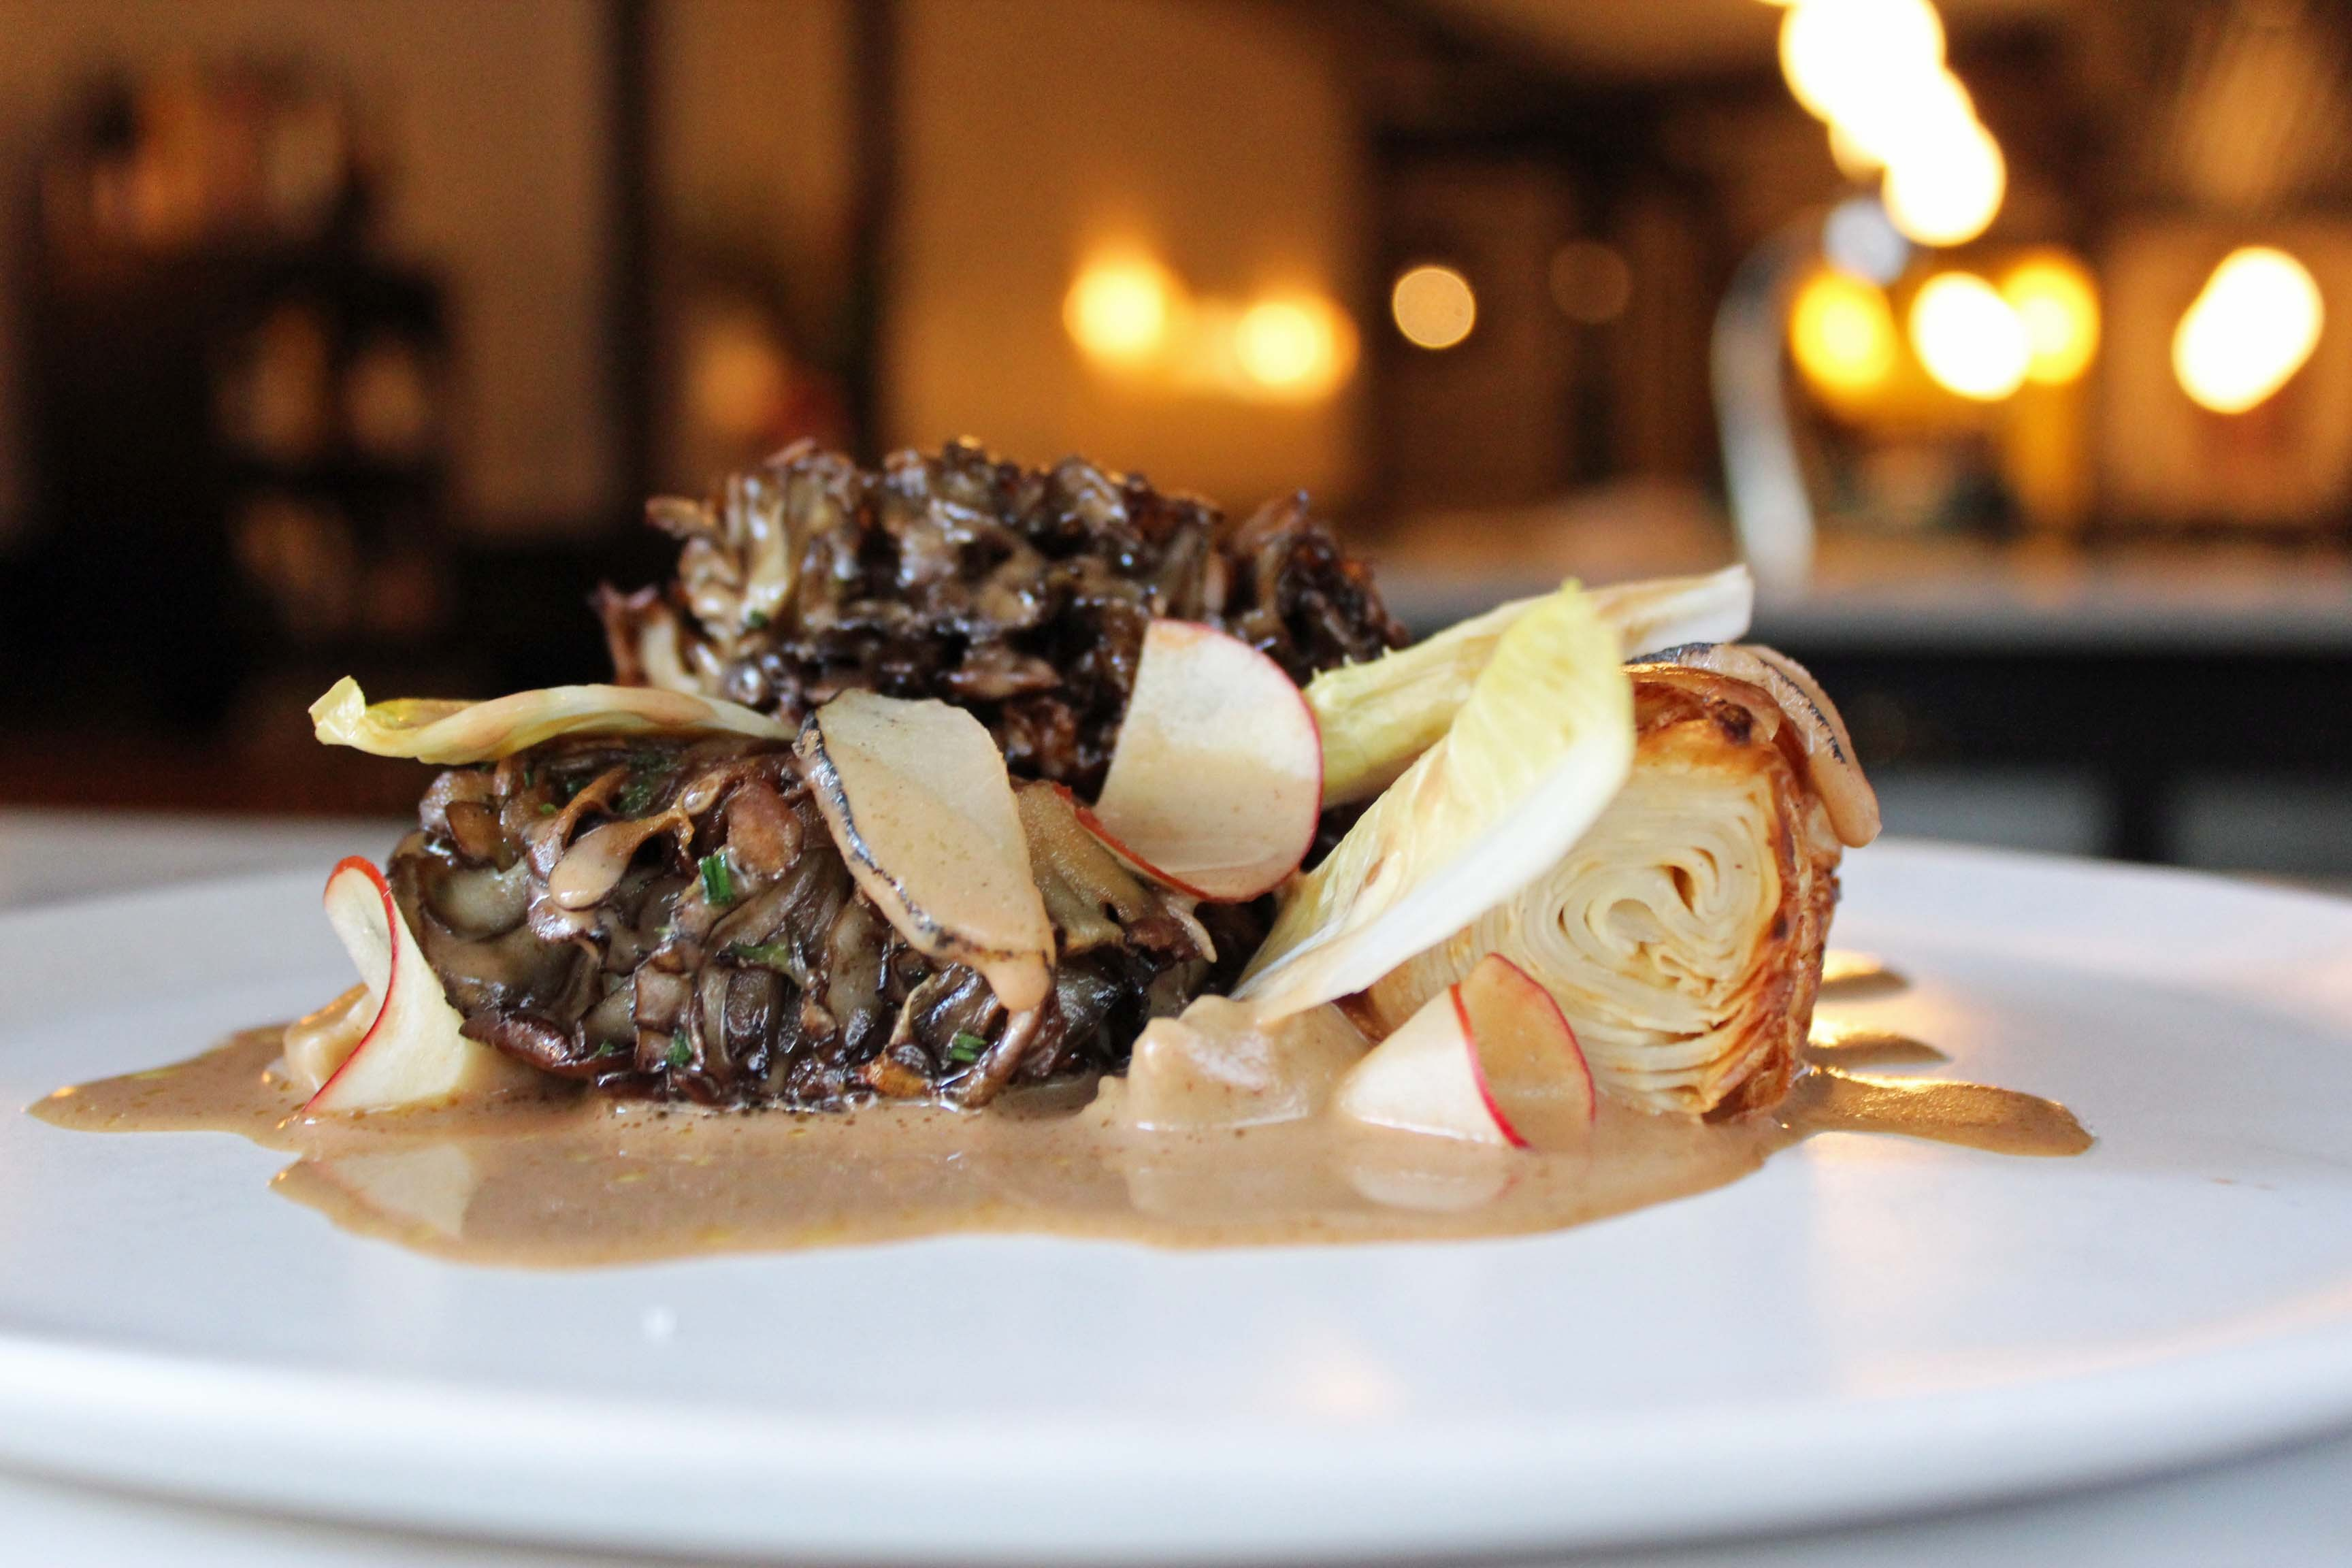 Maitake (hen-of-the-woods mushrooms) with chestnut puree and smoked olive oil